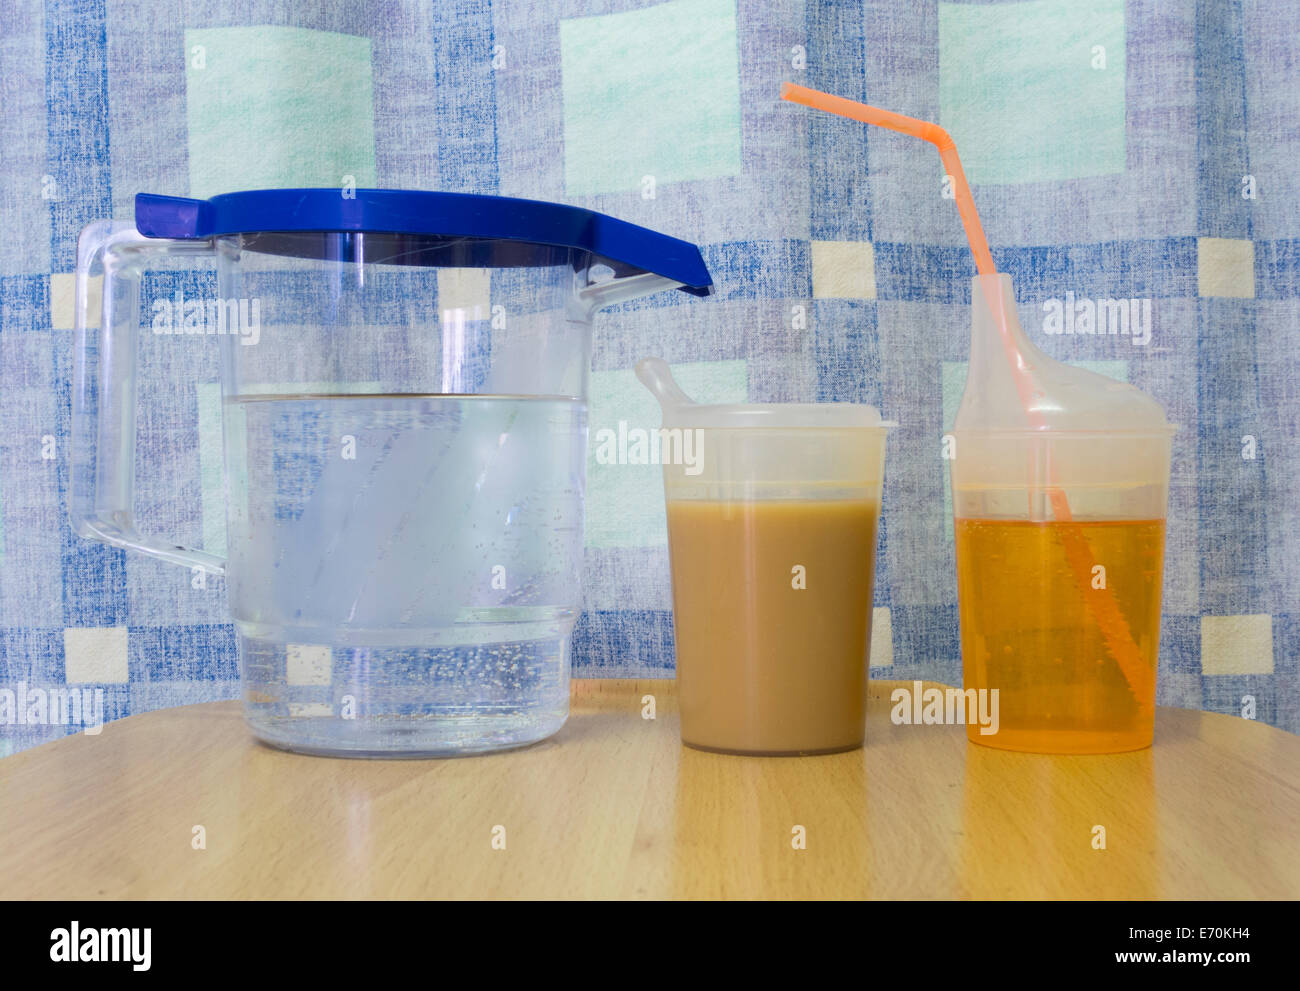 Jug of water, tea and juice drink on patients table in NHS hospital. England. UK - Stock Image